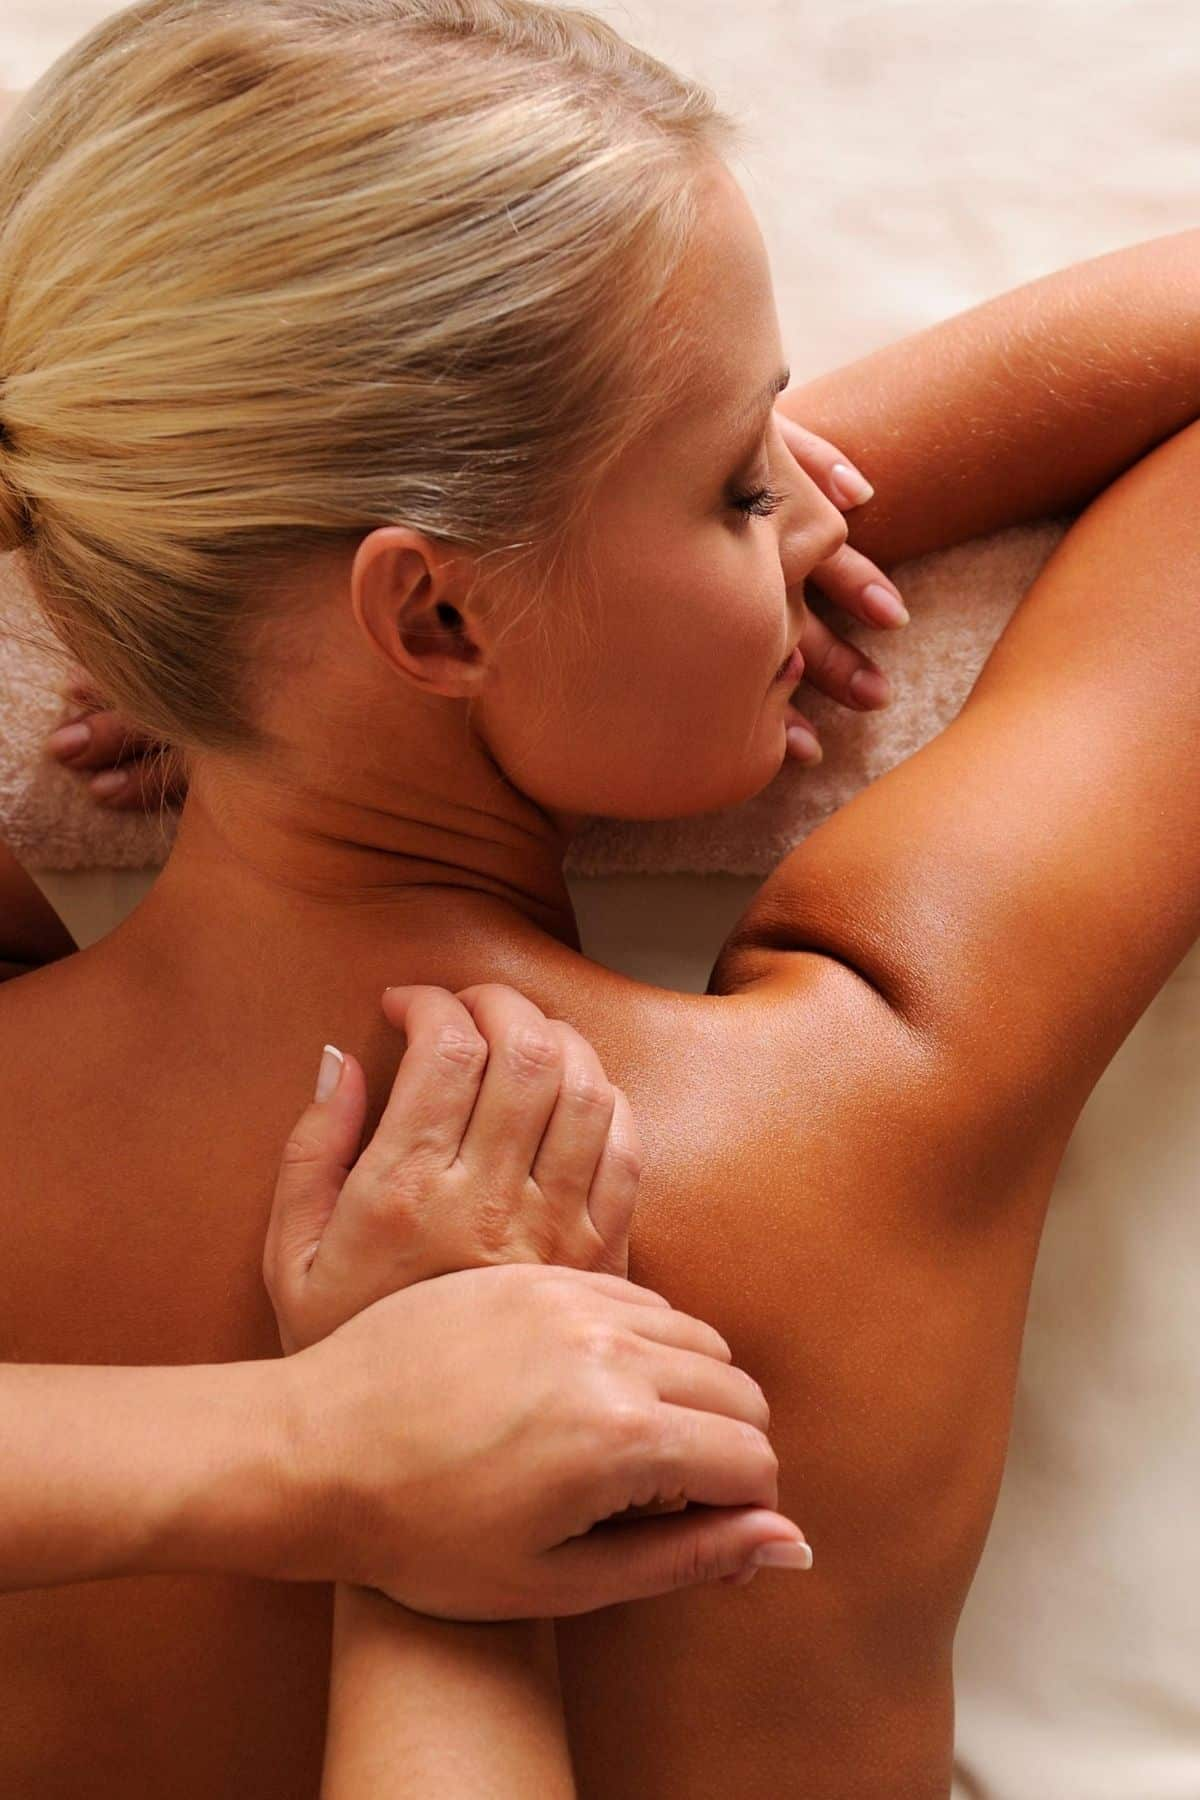 blond woman getting a massage